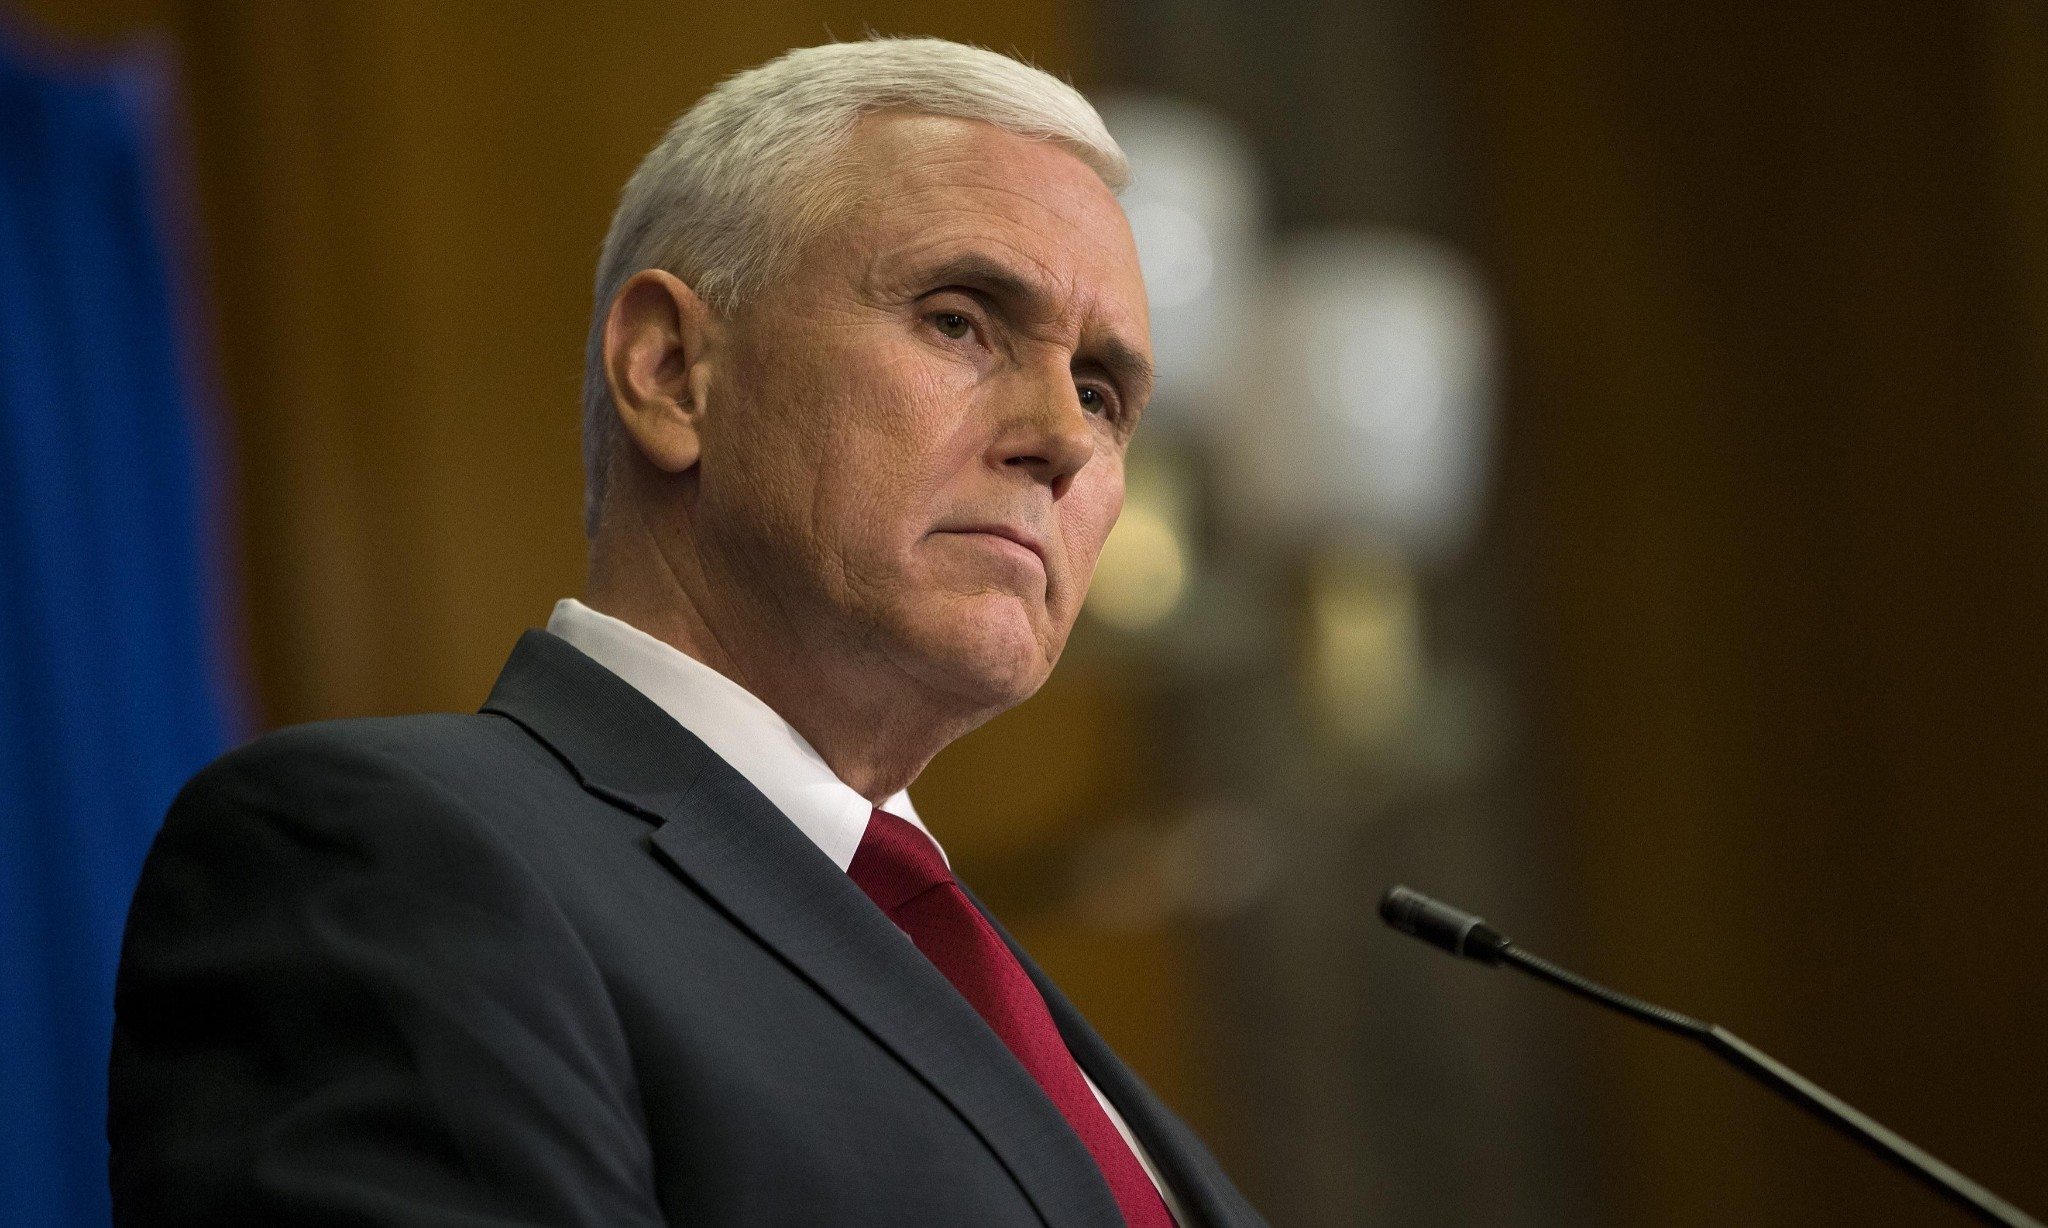 Donald Trump officially names Indiana governor Mike Pence as running mate